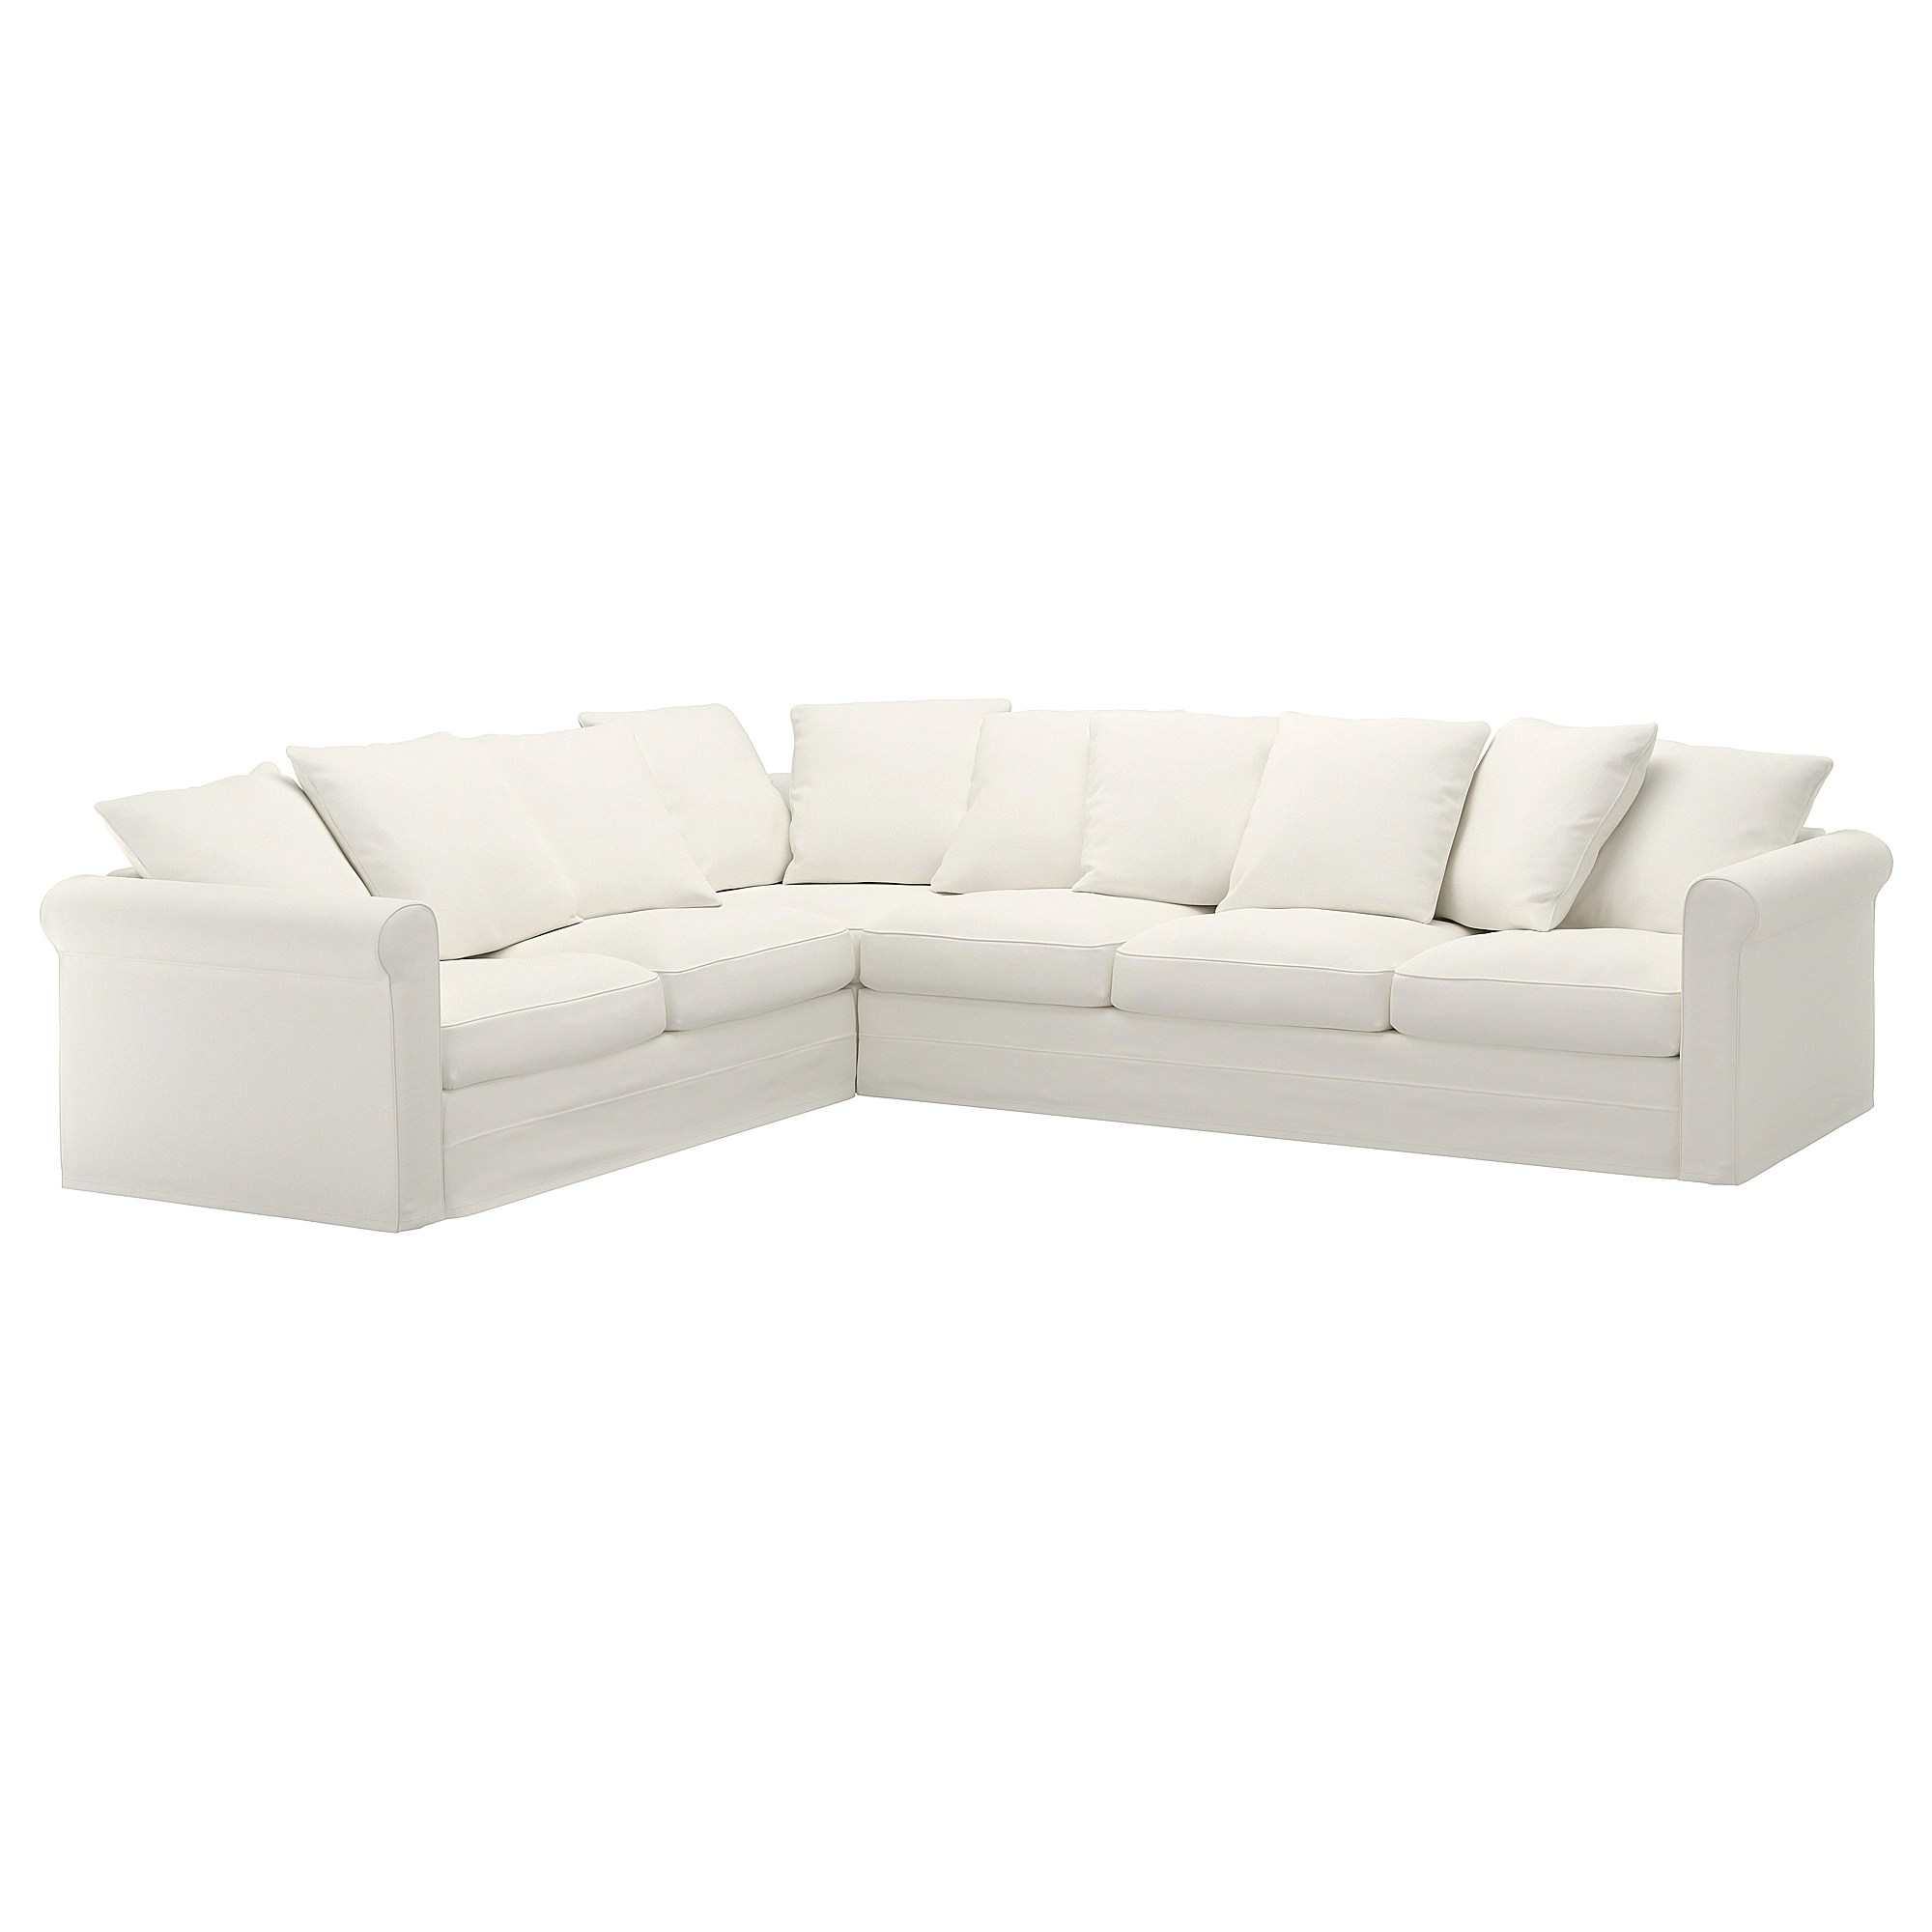 Sectional Corner Couch GrÖnlid Sectional 5 Seat Corner Inseros White